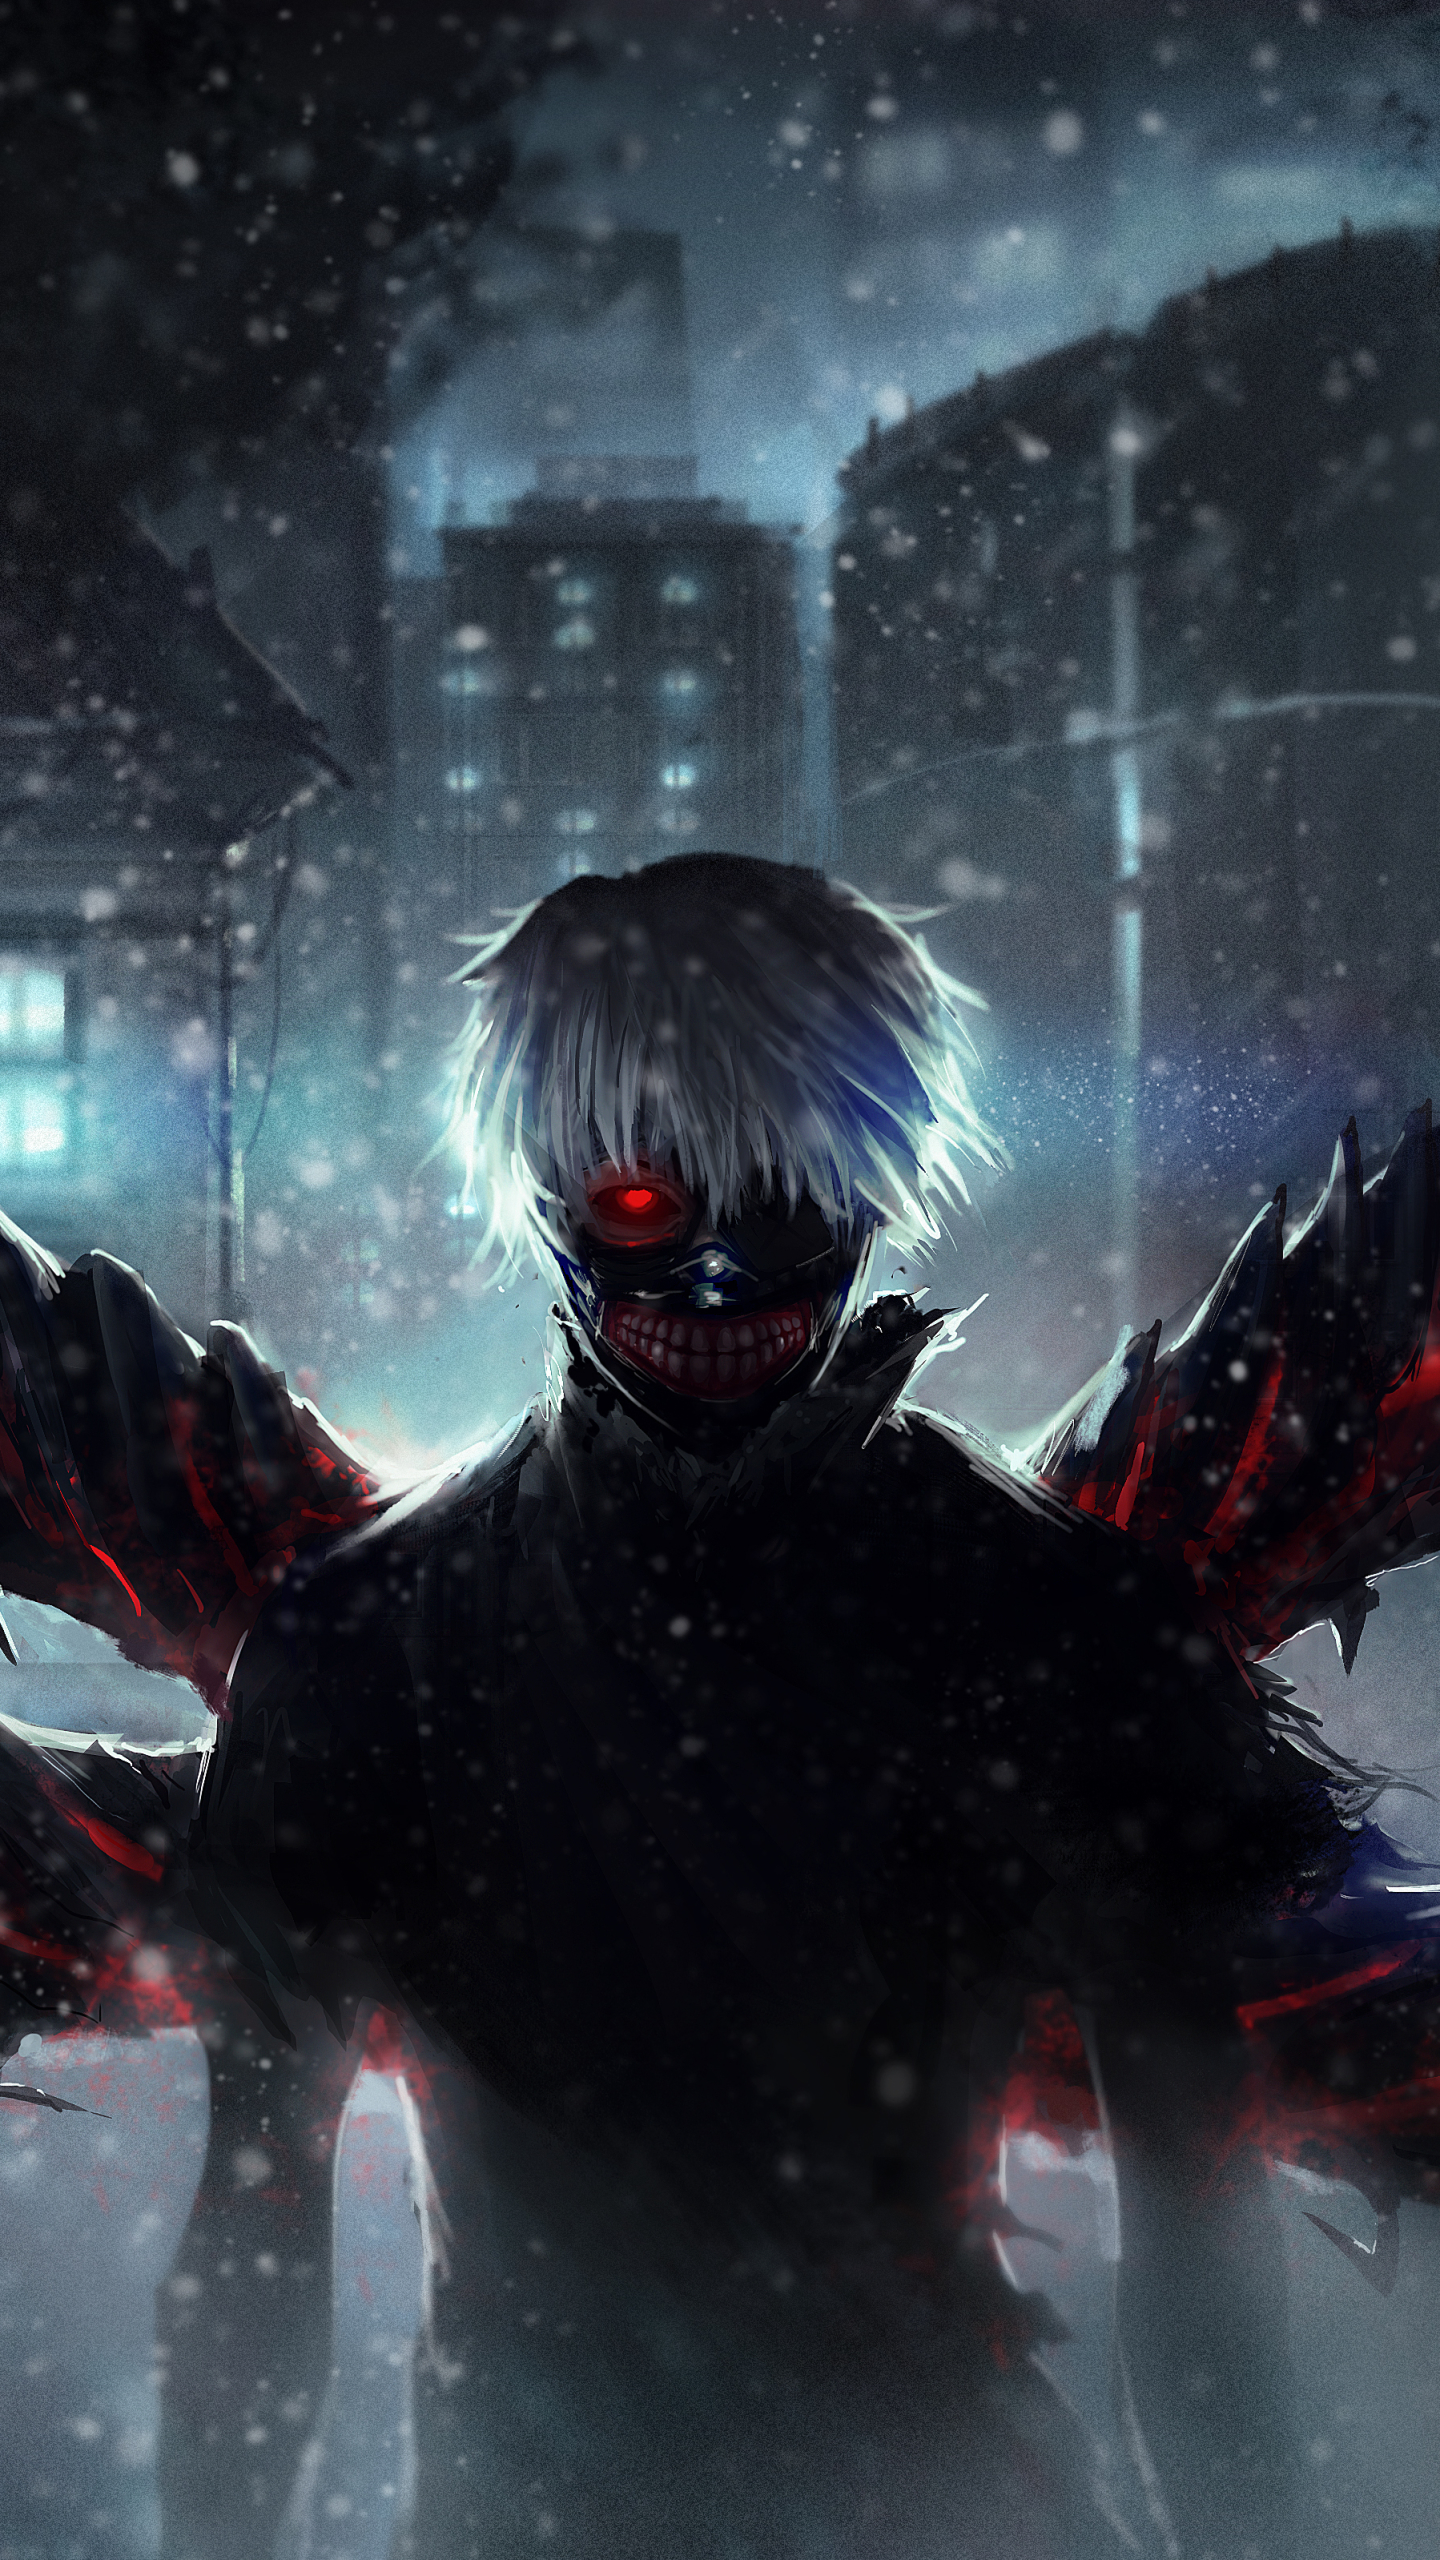 Lumia 640 Animetokyo Ghoul Wallpaper Id 615104